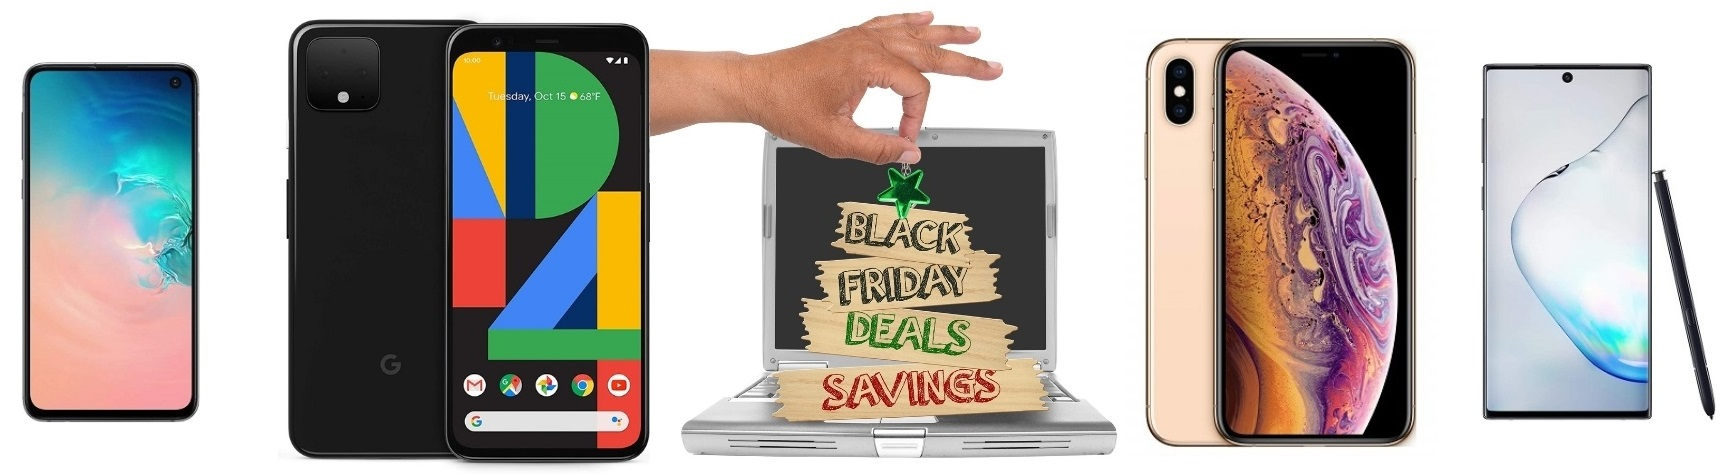 black friday cell phone deals